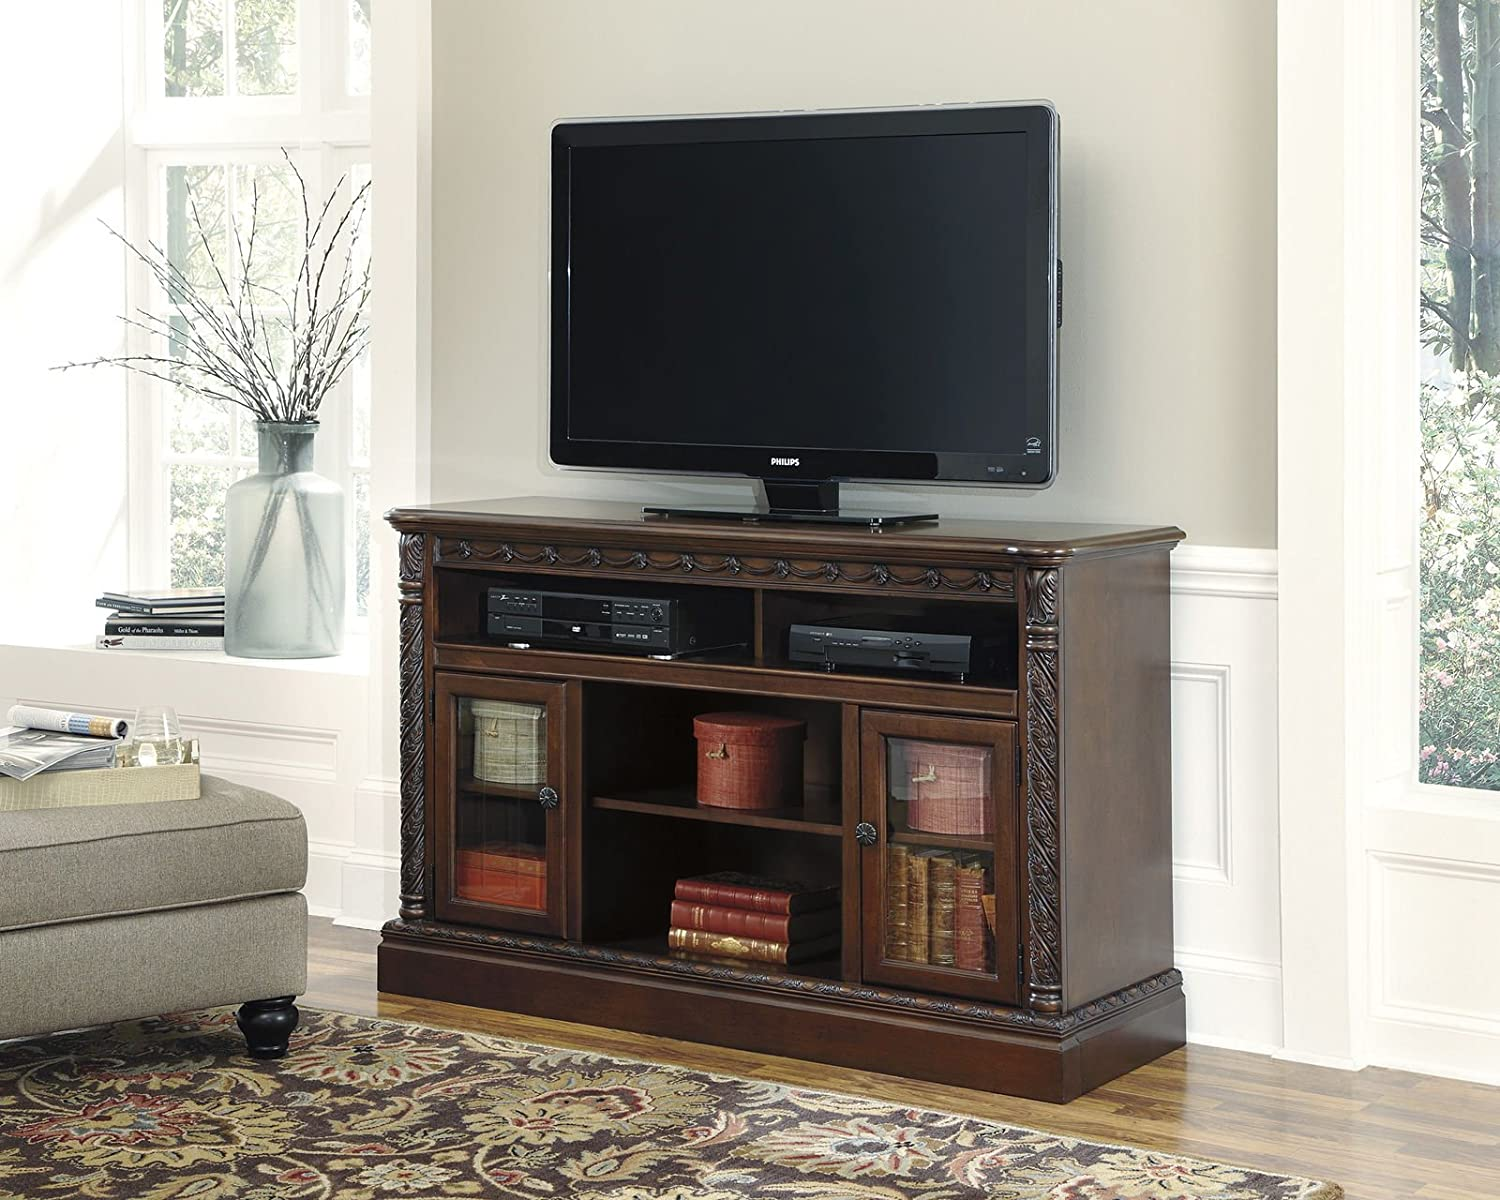 stand threshold height piers furniture products entertainment trim center bridge ashley item shelf tv b width wall and with porter millennium unit